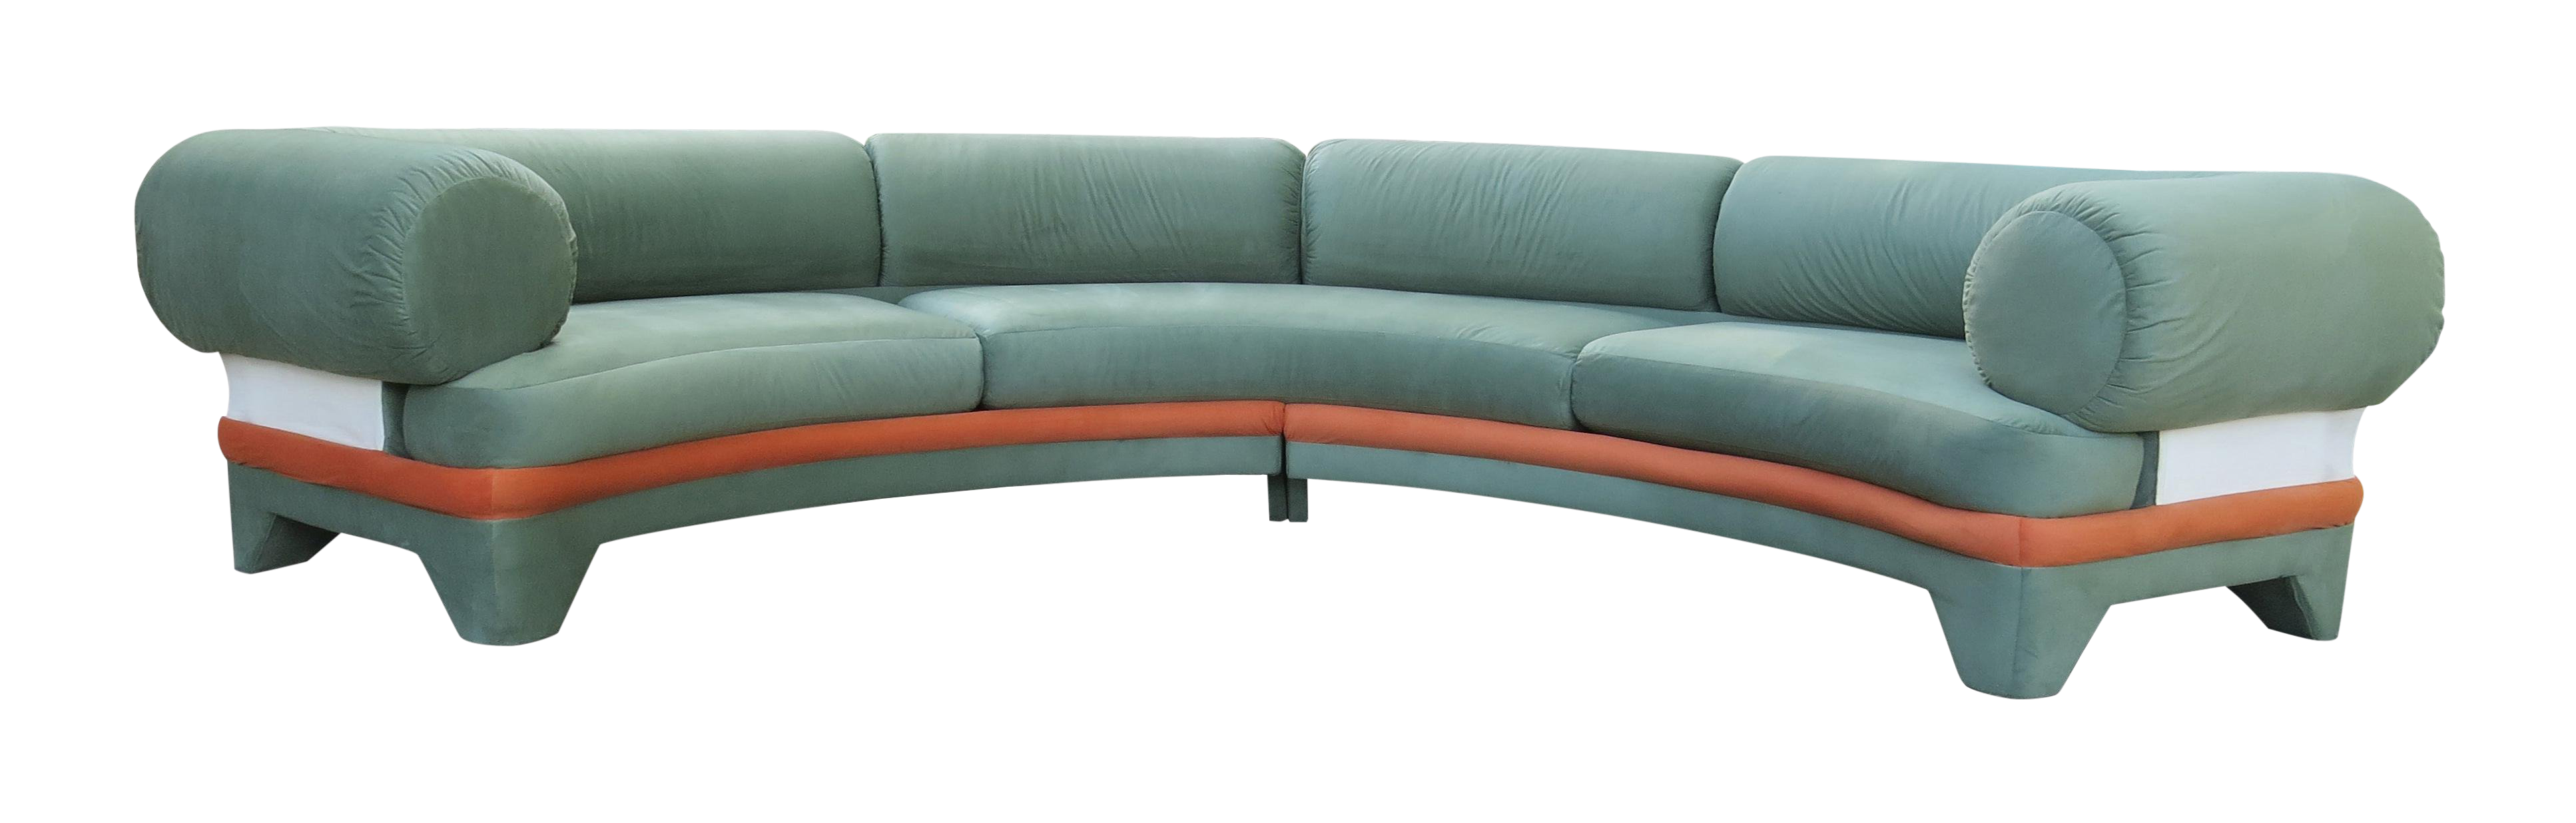 1970s Contemporary Circular Curved Ultrasuede Sectional Sofa In 2020 Sectional Sofa Sectional Curved Sectional